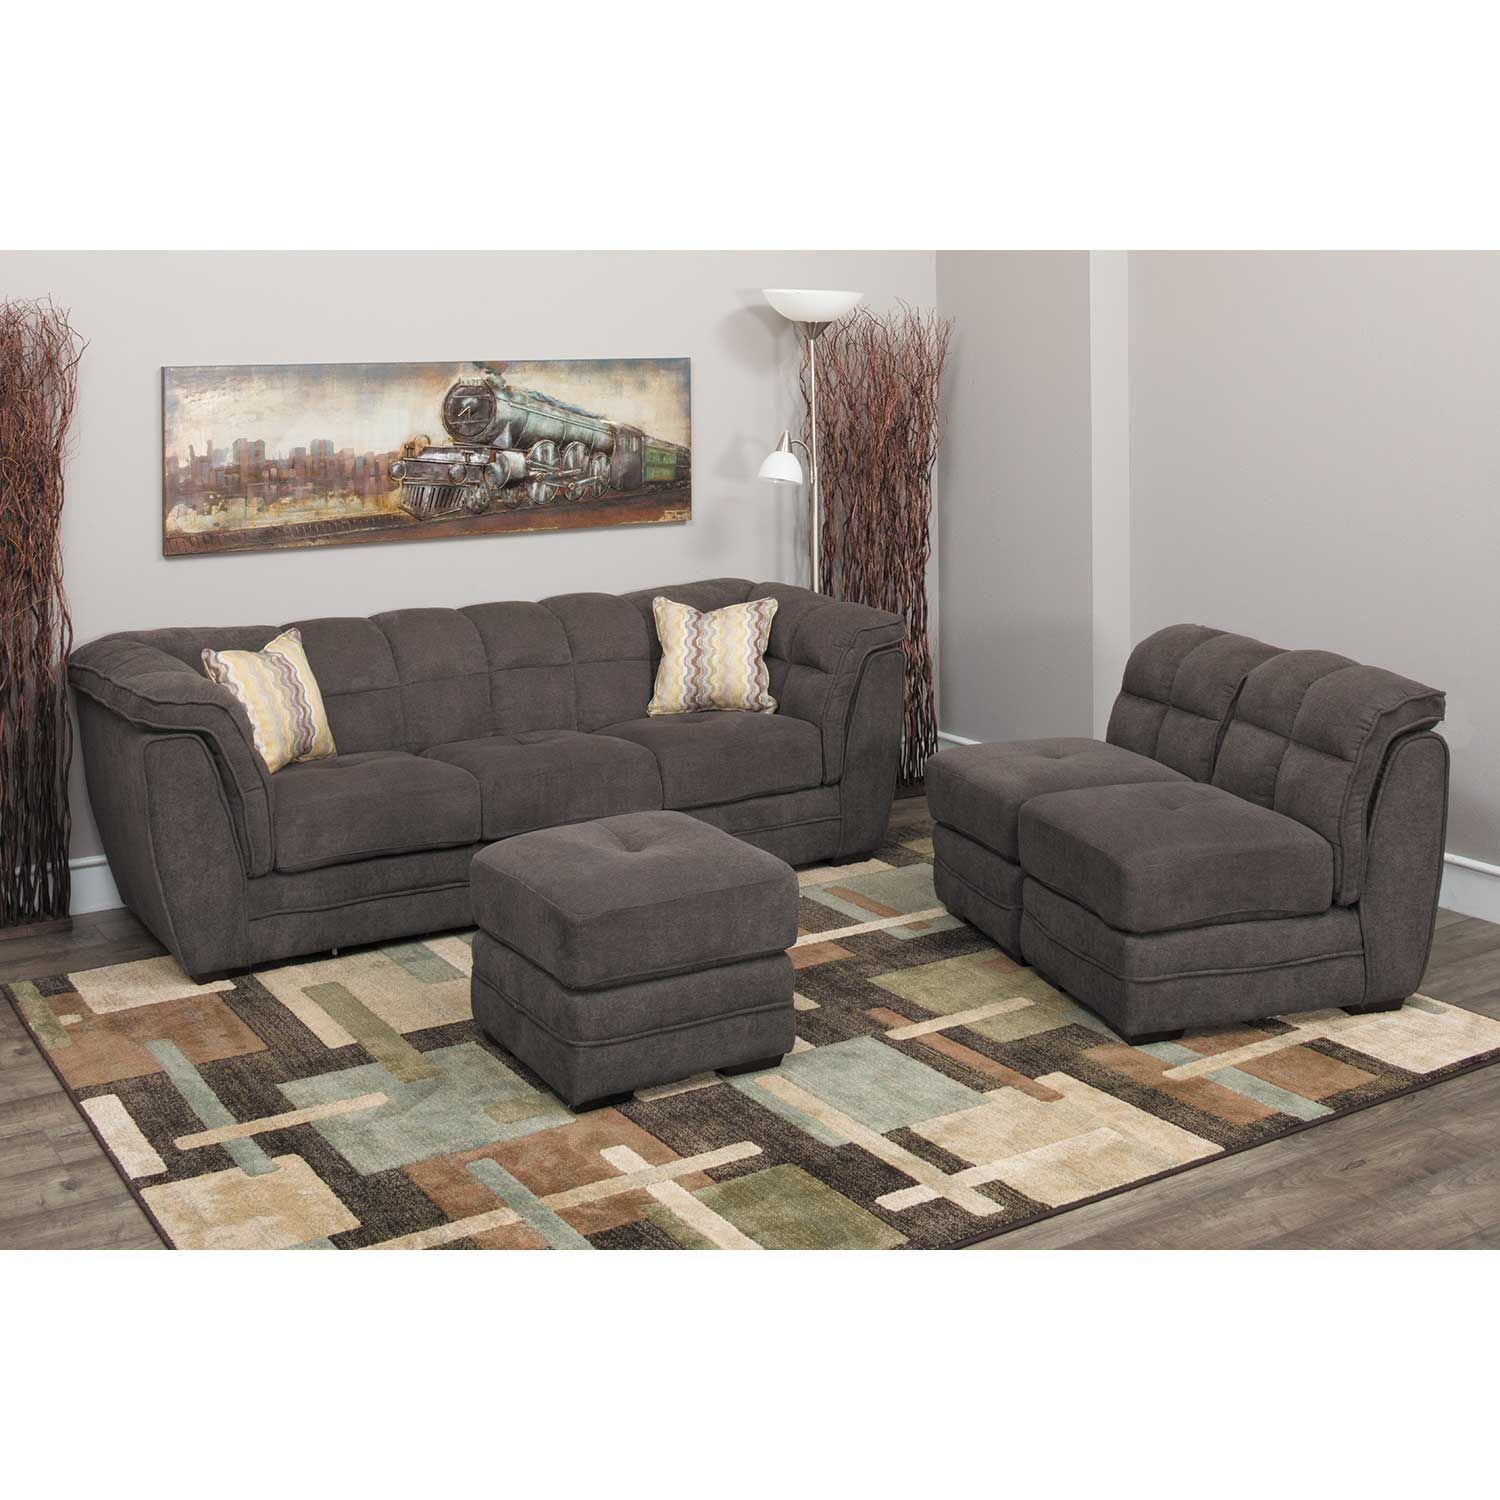 Attirant Picture Of Clio Gray 4 Piece Pit Sectional